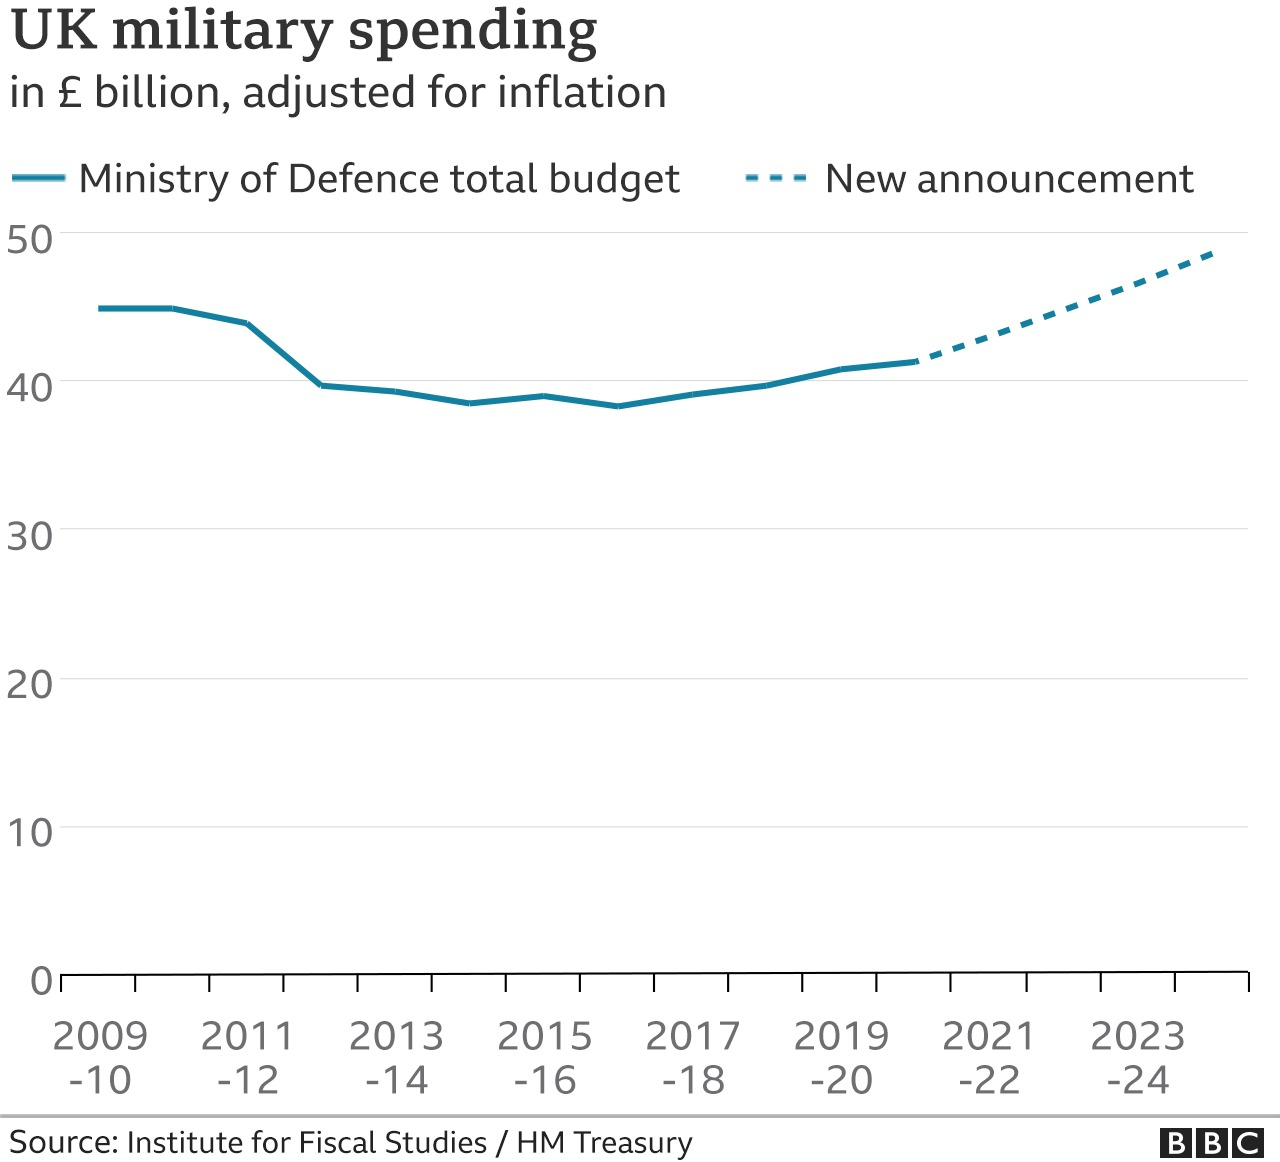 Graph of UK military spending - the financial year 2016-17 was a low point for military spending in recent years